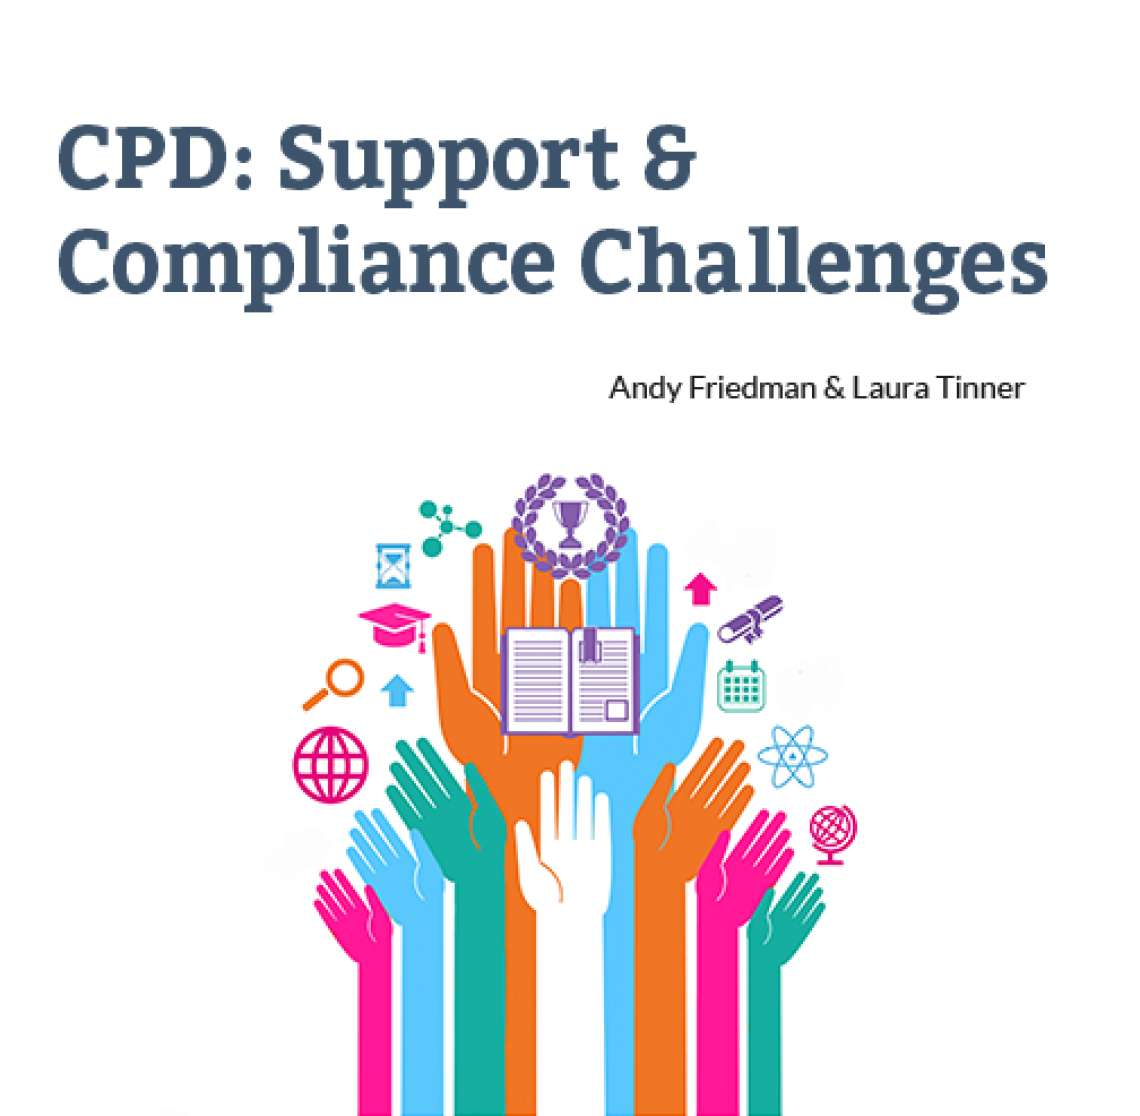 CPD: SUPPORT & COMPLIANCE CHALLENGES (2016) [Digital]